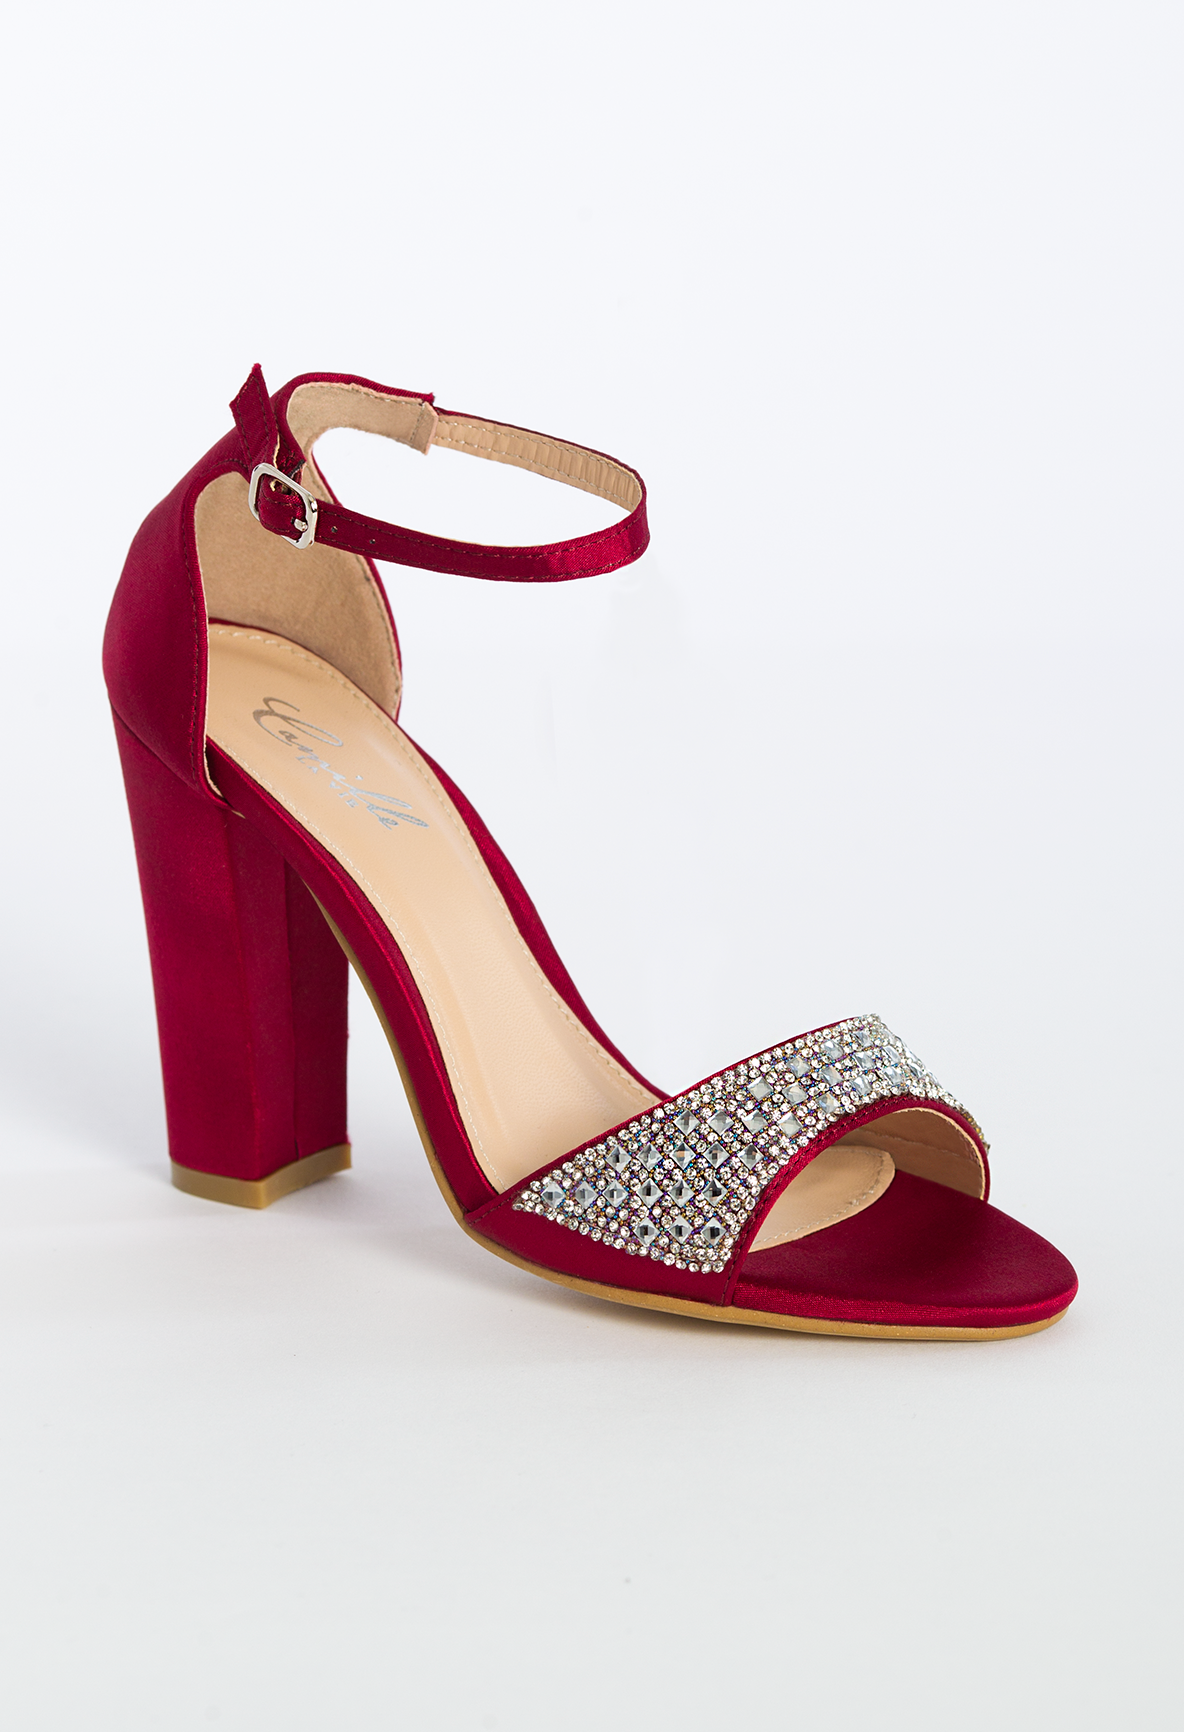 ab4c992eaed High wide heel satin\stone sandal features: • 3